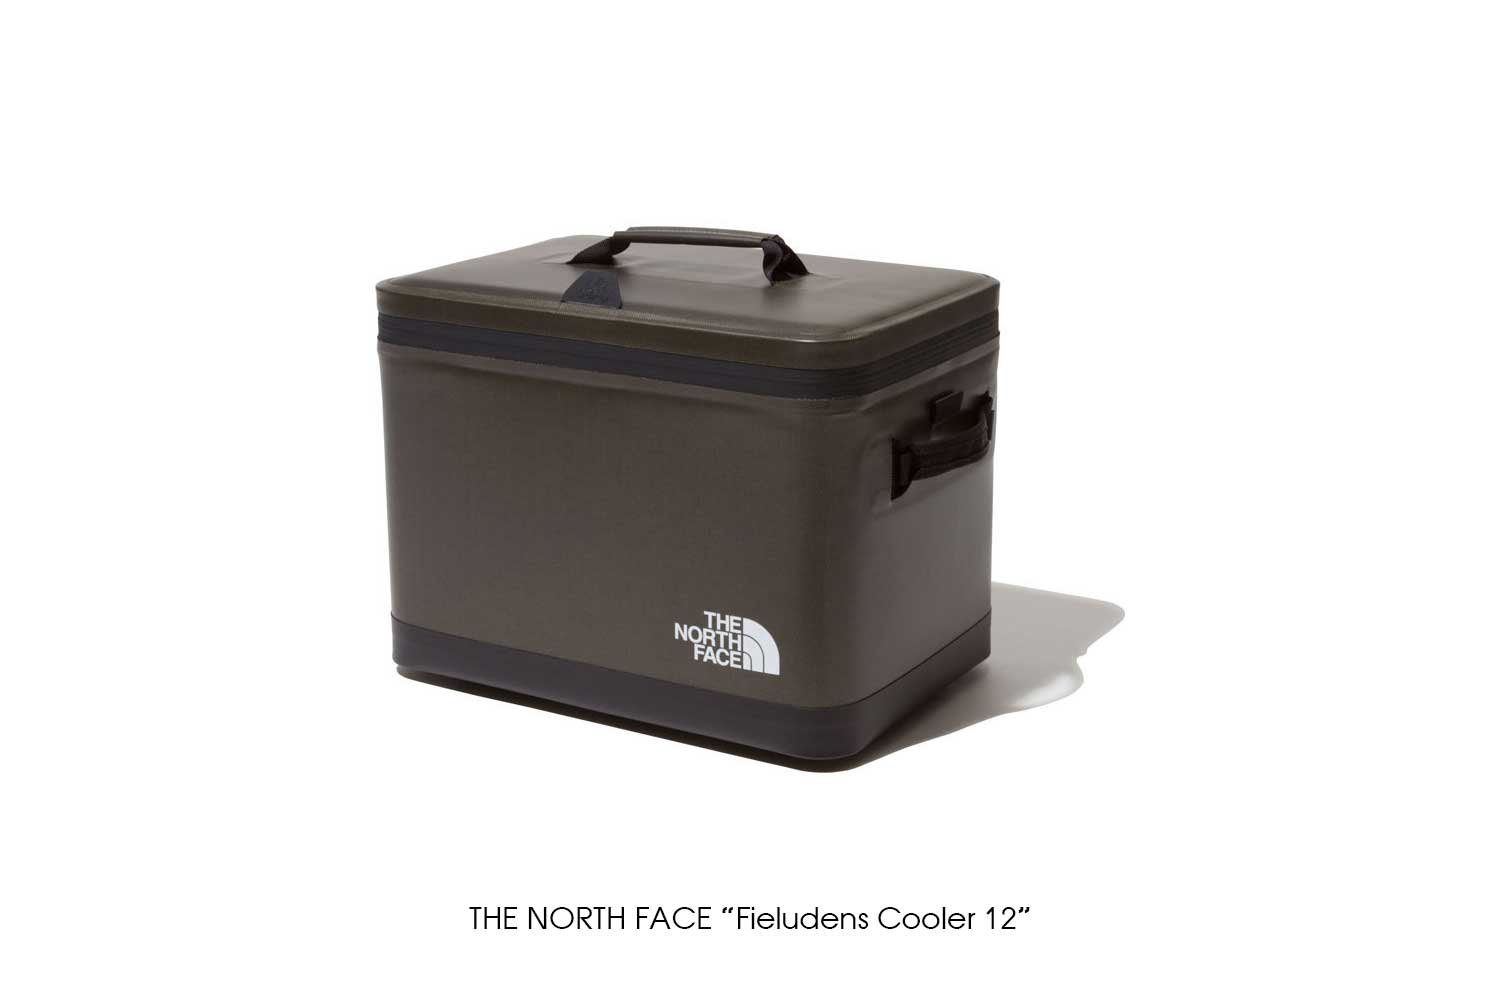 """THE NORTH FACE """"Fieludens Cooler 12"""""""